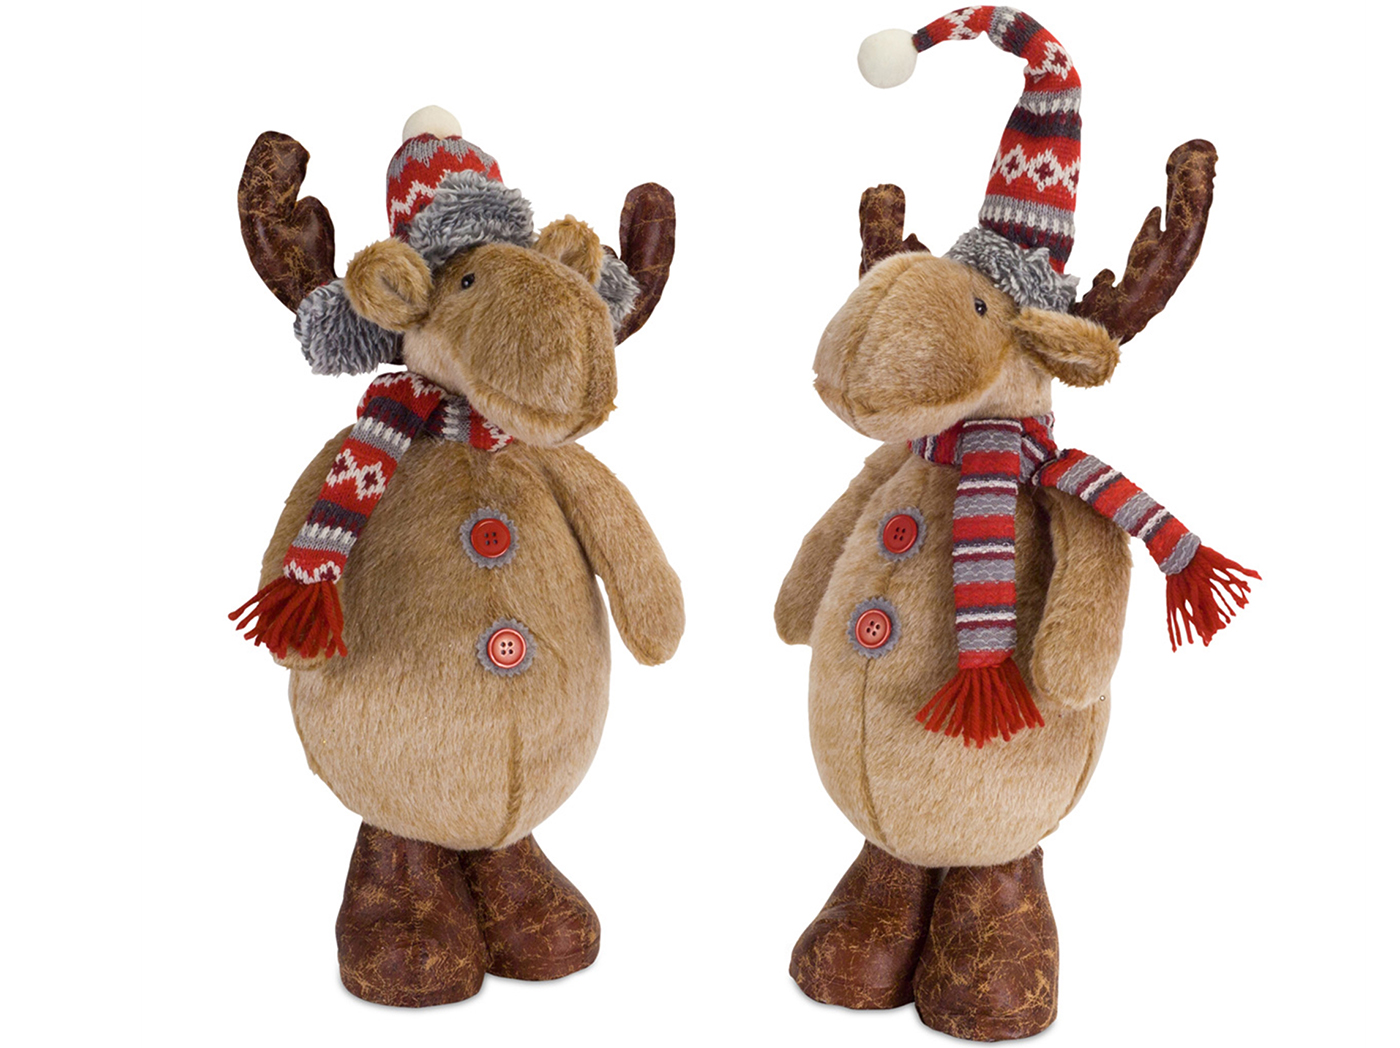 "Assorted Reindeer with Hat 16.5/18""H"